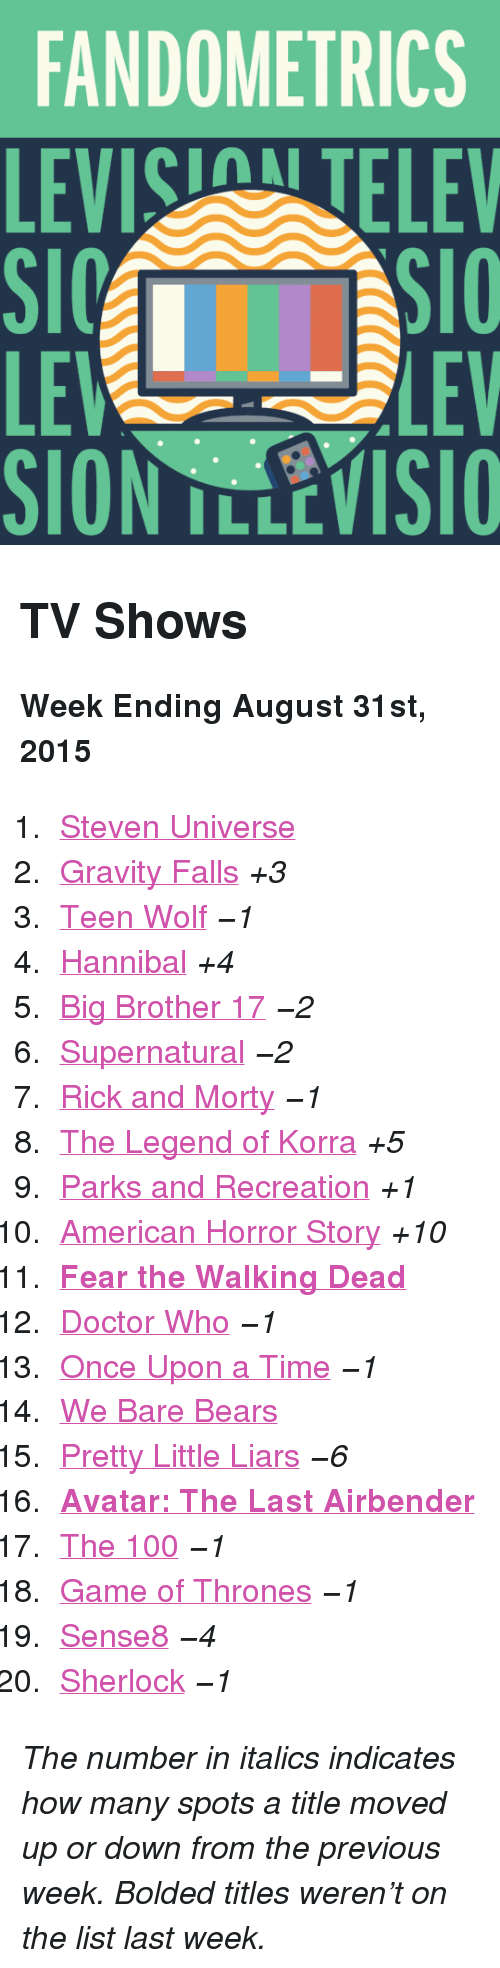 """Fear The Walking Dead: FANDOMETRICS  LEVIS TELEV  LE  SION TLLEVISIO  LEV <h2>TV Shows</h2><p><b>Week Ending August 31st, 2015</b></p><ol><li><a href=""""http://www.tumblr.com/search/steven%20universe"""">Steven Universe</a></li>  <li><a href=""""http://www.tumblr.com/search/gravity%20falls"""">Gravity Falls</a><i>+3</i></li>  <li><a href=""""http://www.tumblr.com/search/teen%20wolf"""">Teen Wolf</a><i>−1</i></li>  <li><a href=""""http://www.tumblr.com/search/hannibal"""">Hannibal</a><i>+4</i></li>  <li><a href=""""http://www.tumblr.com/search/bb17"""">Big Brother 17</a><i>−2</i></li>  <li><a href=""""http://www.tumblr.com/search/supernatural"""">Supernatural</a><i>−2</i></li>  <li><a href=""""http://www.tumblr.com/search/rick%20and%20morty"""">Rick and Morty</a><i>−1</i></li>  <li><a href=""""http://www.tumblr.com/search/legend%20of%20korra"""">The Legend of Korra</a><i>+5</i></li>  <li><a href=""""http://www.tumblr.com/search/parks%20and%20recreation"""">Parks and Recreation</a><i>+1</i></li>  <li><a href=""""http://www.tumblr.com/search/american%20horror%20story"""">American Horror Story</a><i>+10</i></li>  <li><a href=""""http://www.tumblr.com/search/fear%20the%20walking%20dead""""><b>Fear the Walking Dead</b></a></li>  <li><a href=""""http://www.tumblr.com/search/doctor%20who"""">Doctor Who</a><i>−1</i></li>  <li><a href=""""http://www.tumblr.com/search/ouat"""">Once Upon a Time</a><i>−1</i></li>  <li><a href=""""http://www.tumblr.com/search/we%20bare%20bears"""">We Bare Bears</a></li>  <li><a href=""""http://www.tumblr.com/search/pretty%20little%20liars"""">Pretty Little Liars</a><i>−6</i></li>  <li><a href=""""http://www.tumblr.com/search/atla""""><b>Avatar: The Last Airbender</b></a></li>  <li><a href=""""http://www.tumblr.com/search/the%20100"""">The 100</a><i>−1</i></li>  <li><a href=""""http://www.tumblr.com/search/game%20of%20thrones"""">Game of Thrones</a><i>−1</i></li>  <li><a href=""""http://www.tumblr.com/search/sense8"""">Sense8</a><i>−4</i></li>  <li><a href=""""http://www.tumblr.com/search/sherlock"""">Sherlock</a><i>−1</i></li></ol><p><i>The number in italics indi"""